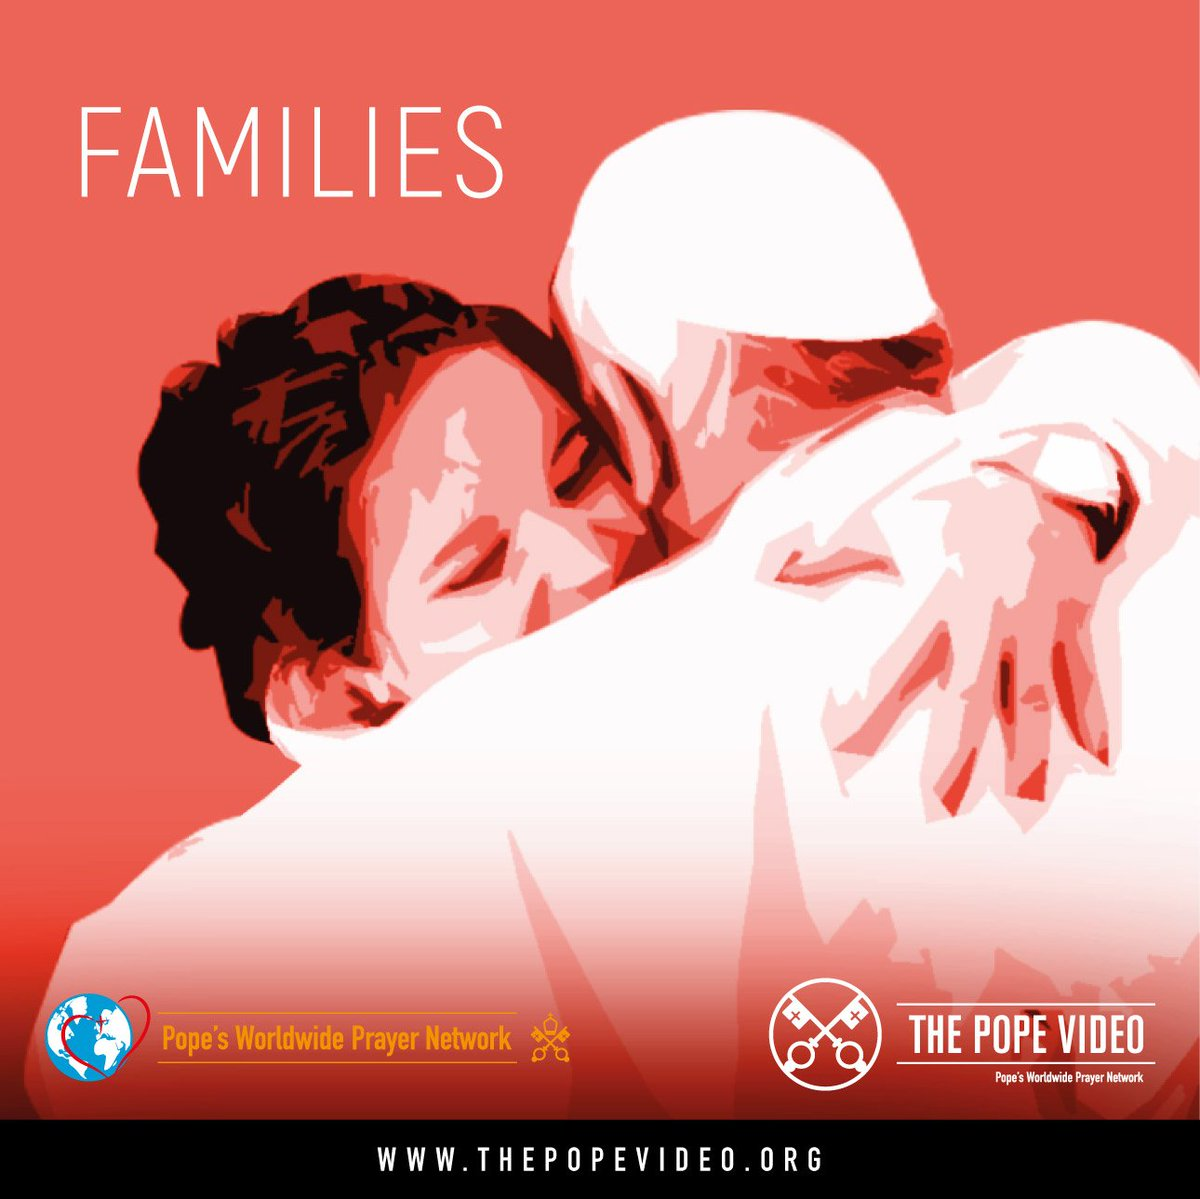 . #Families #ThePopeVideo